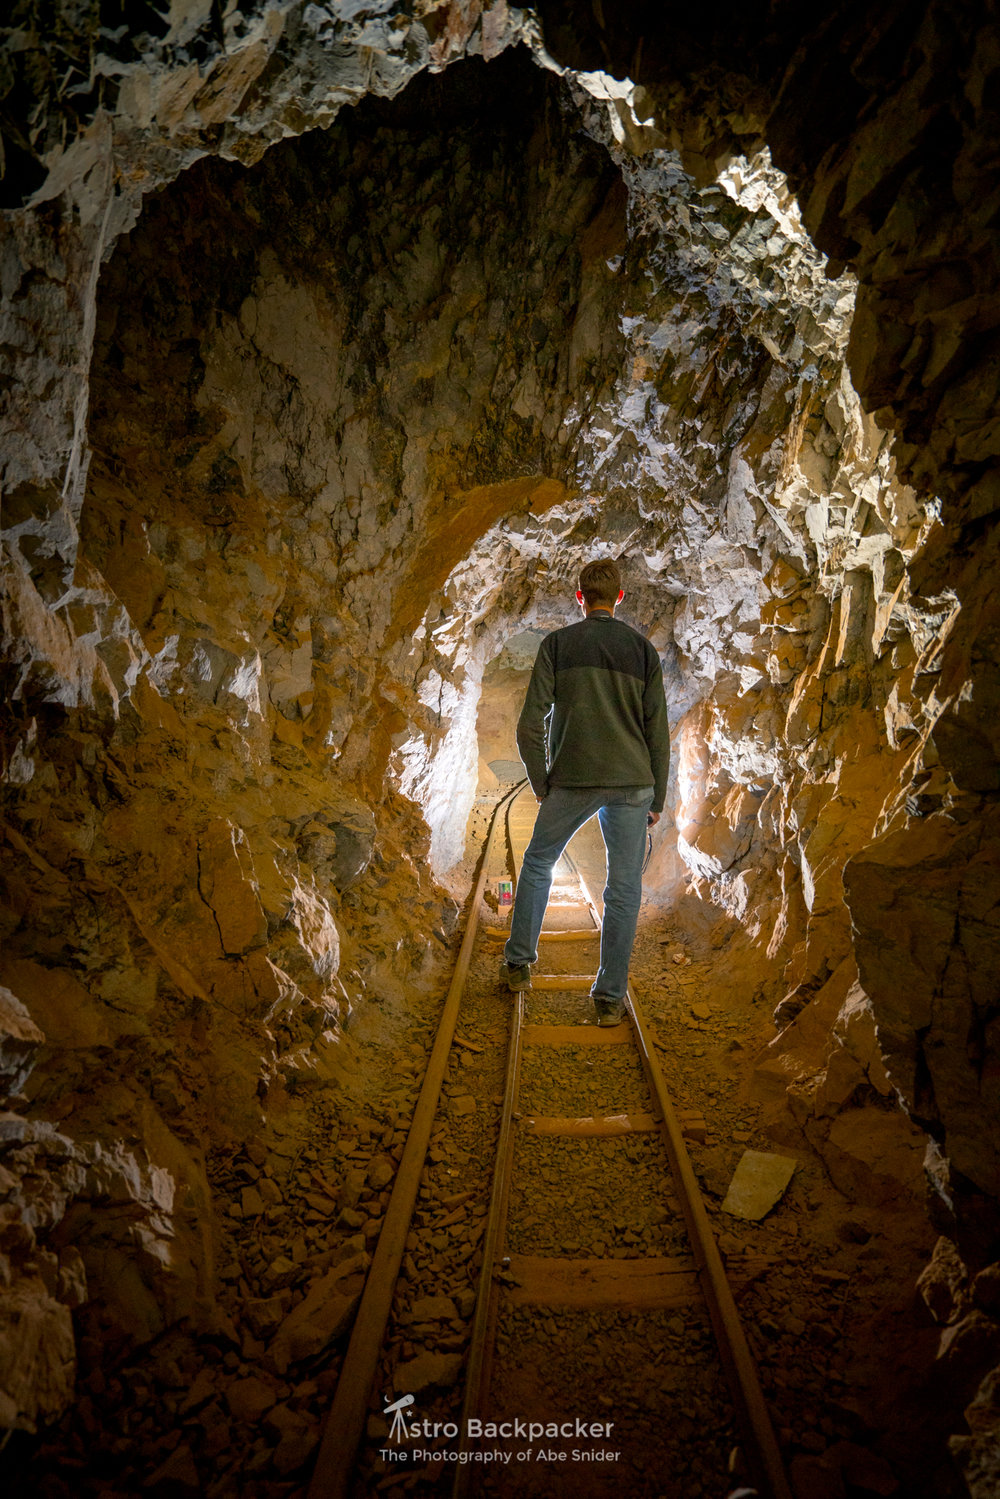 Andy Orr explores an abandoned mine near Death Valley.